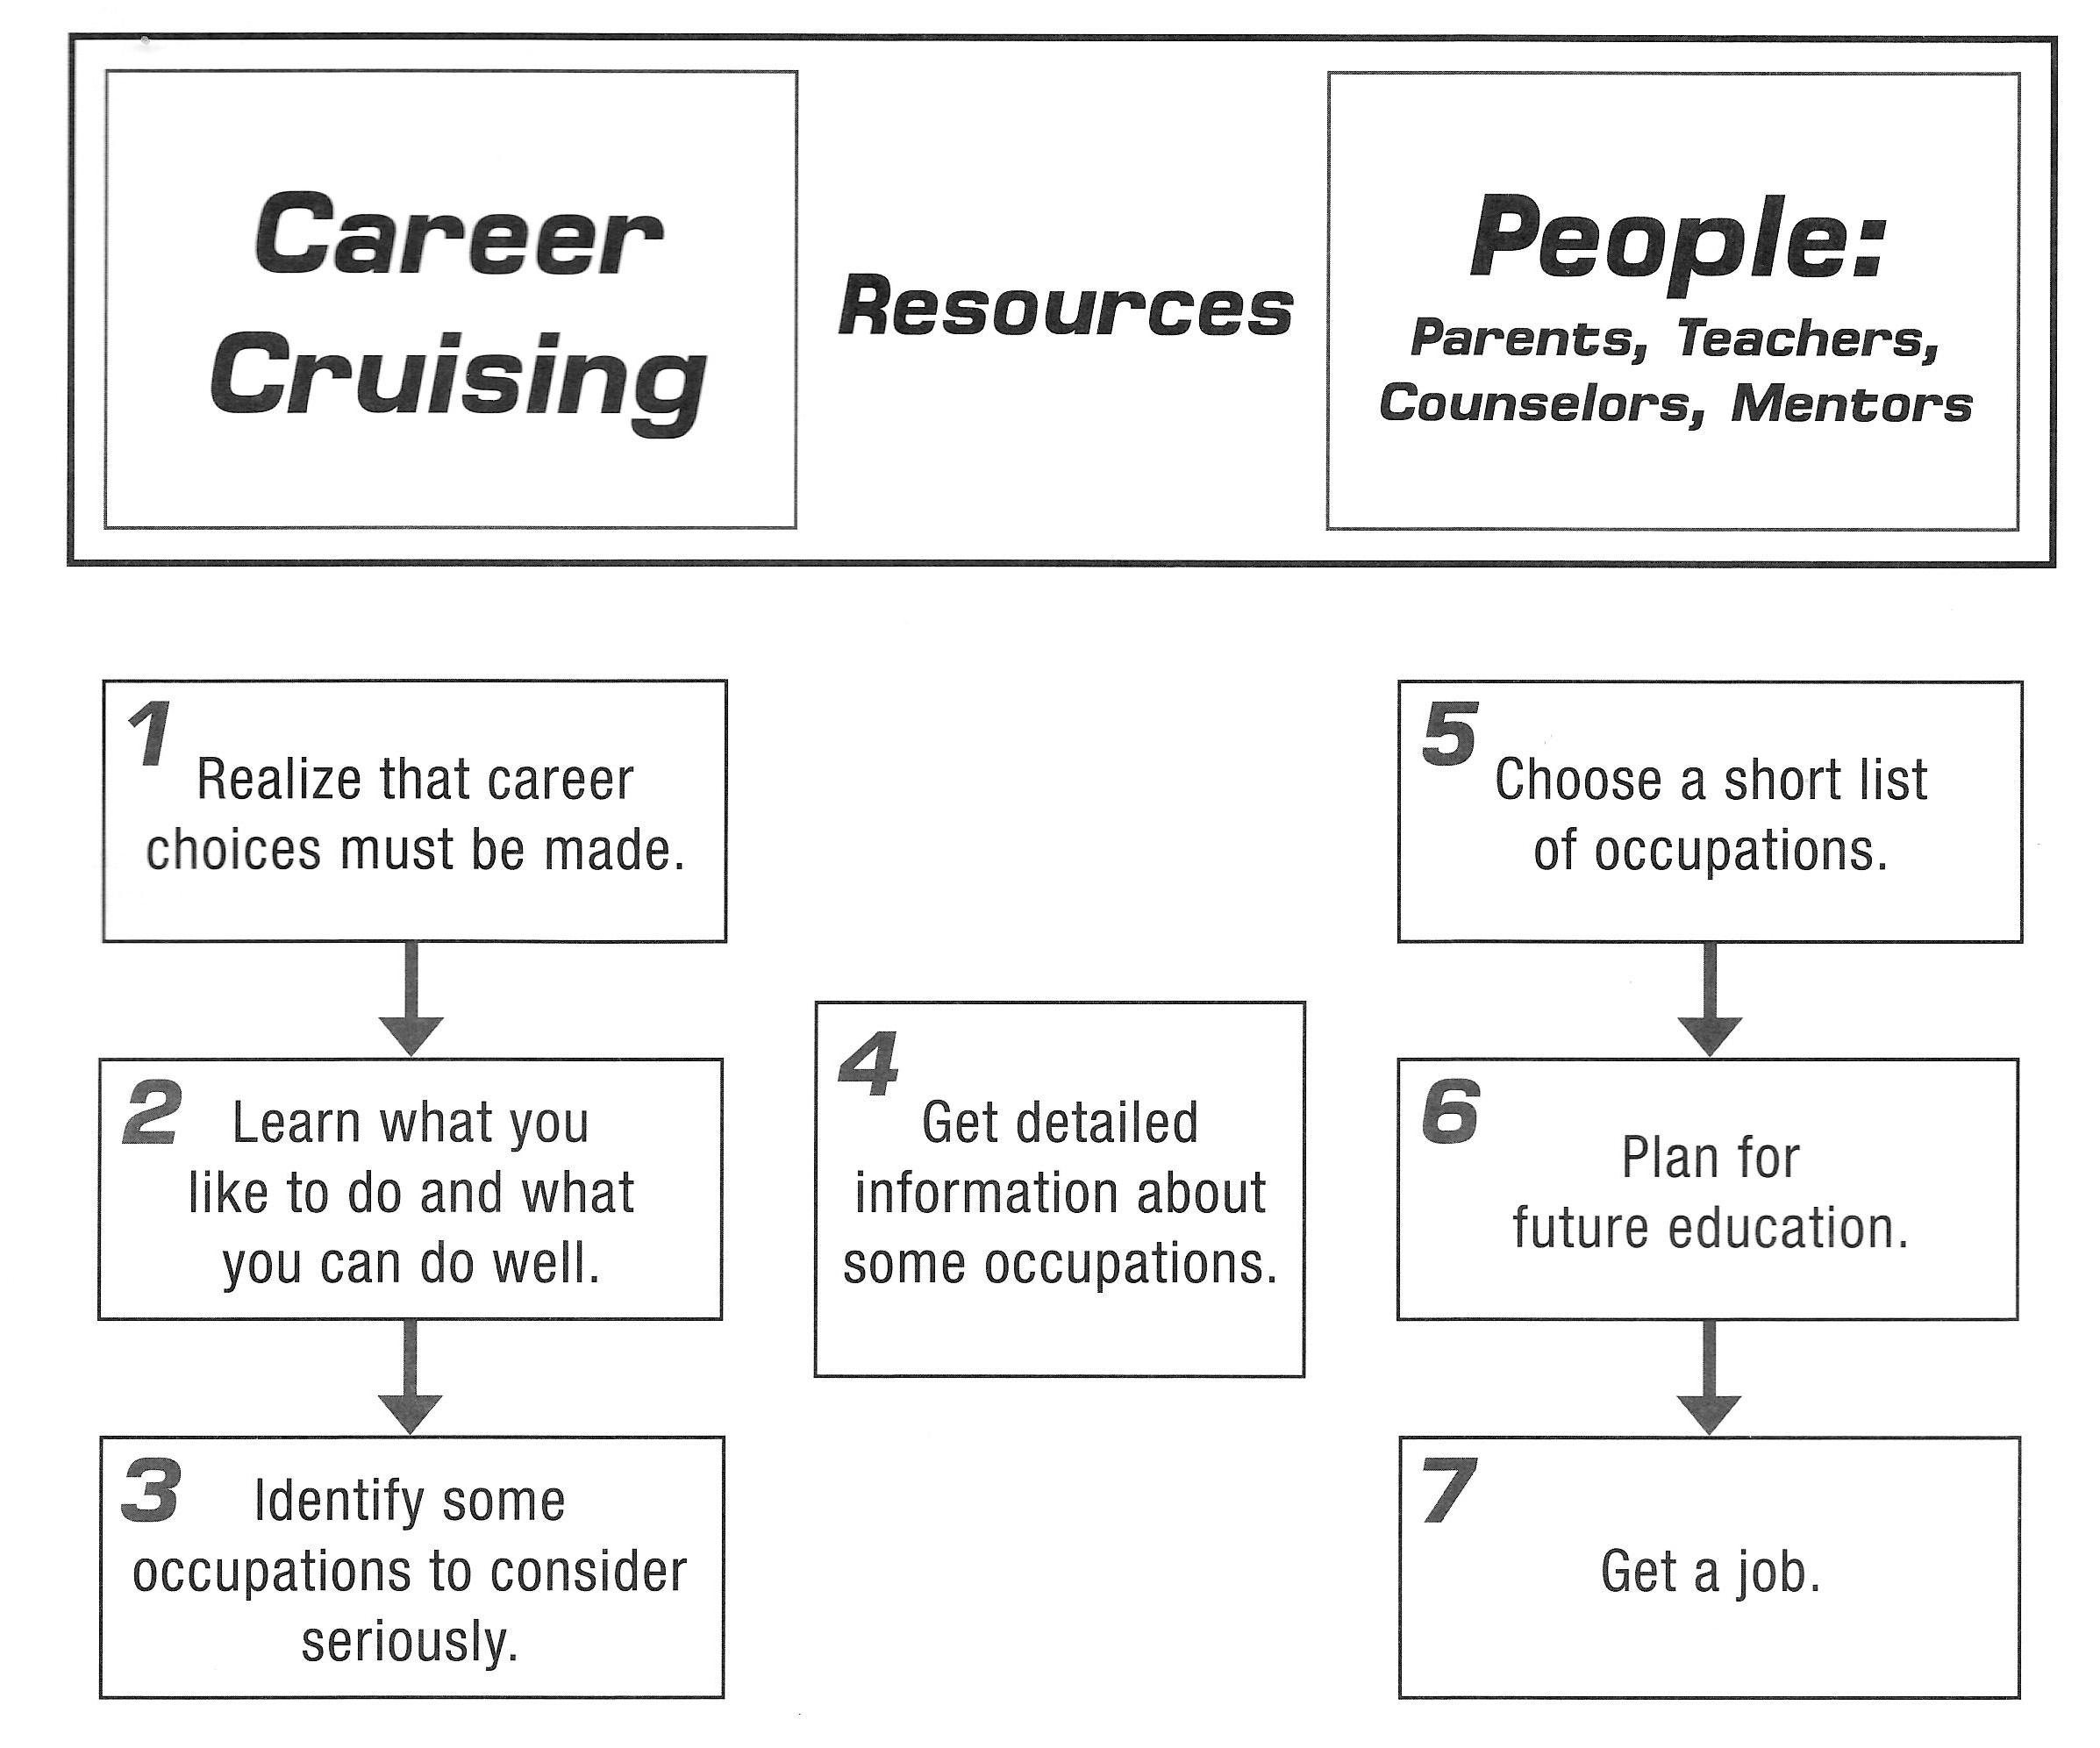 career-cruising